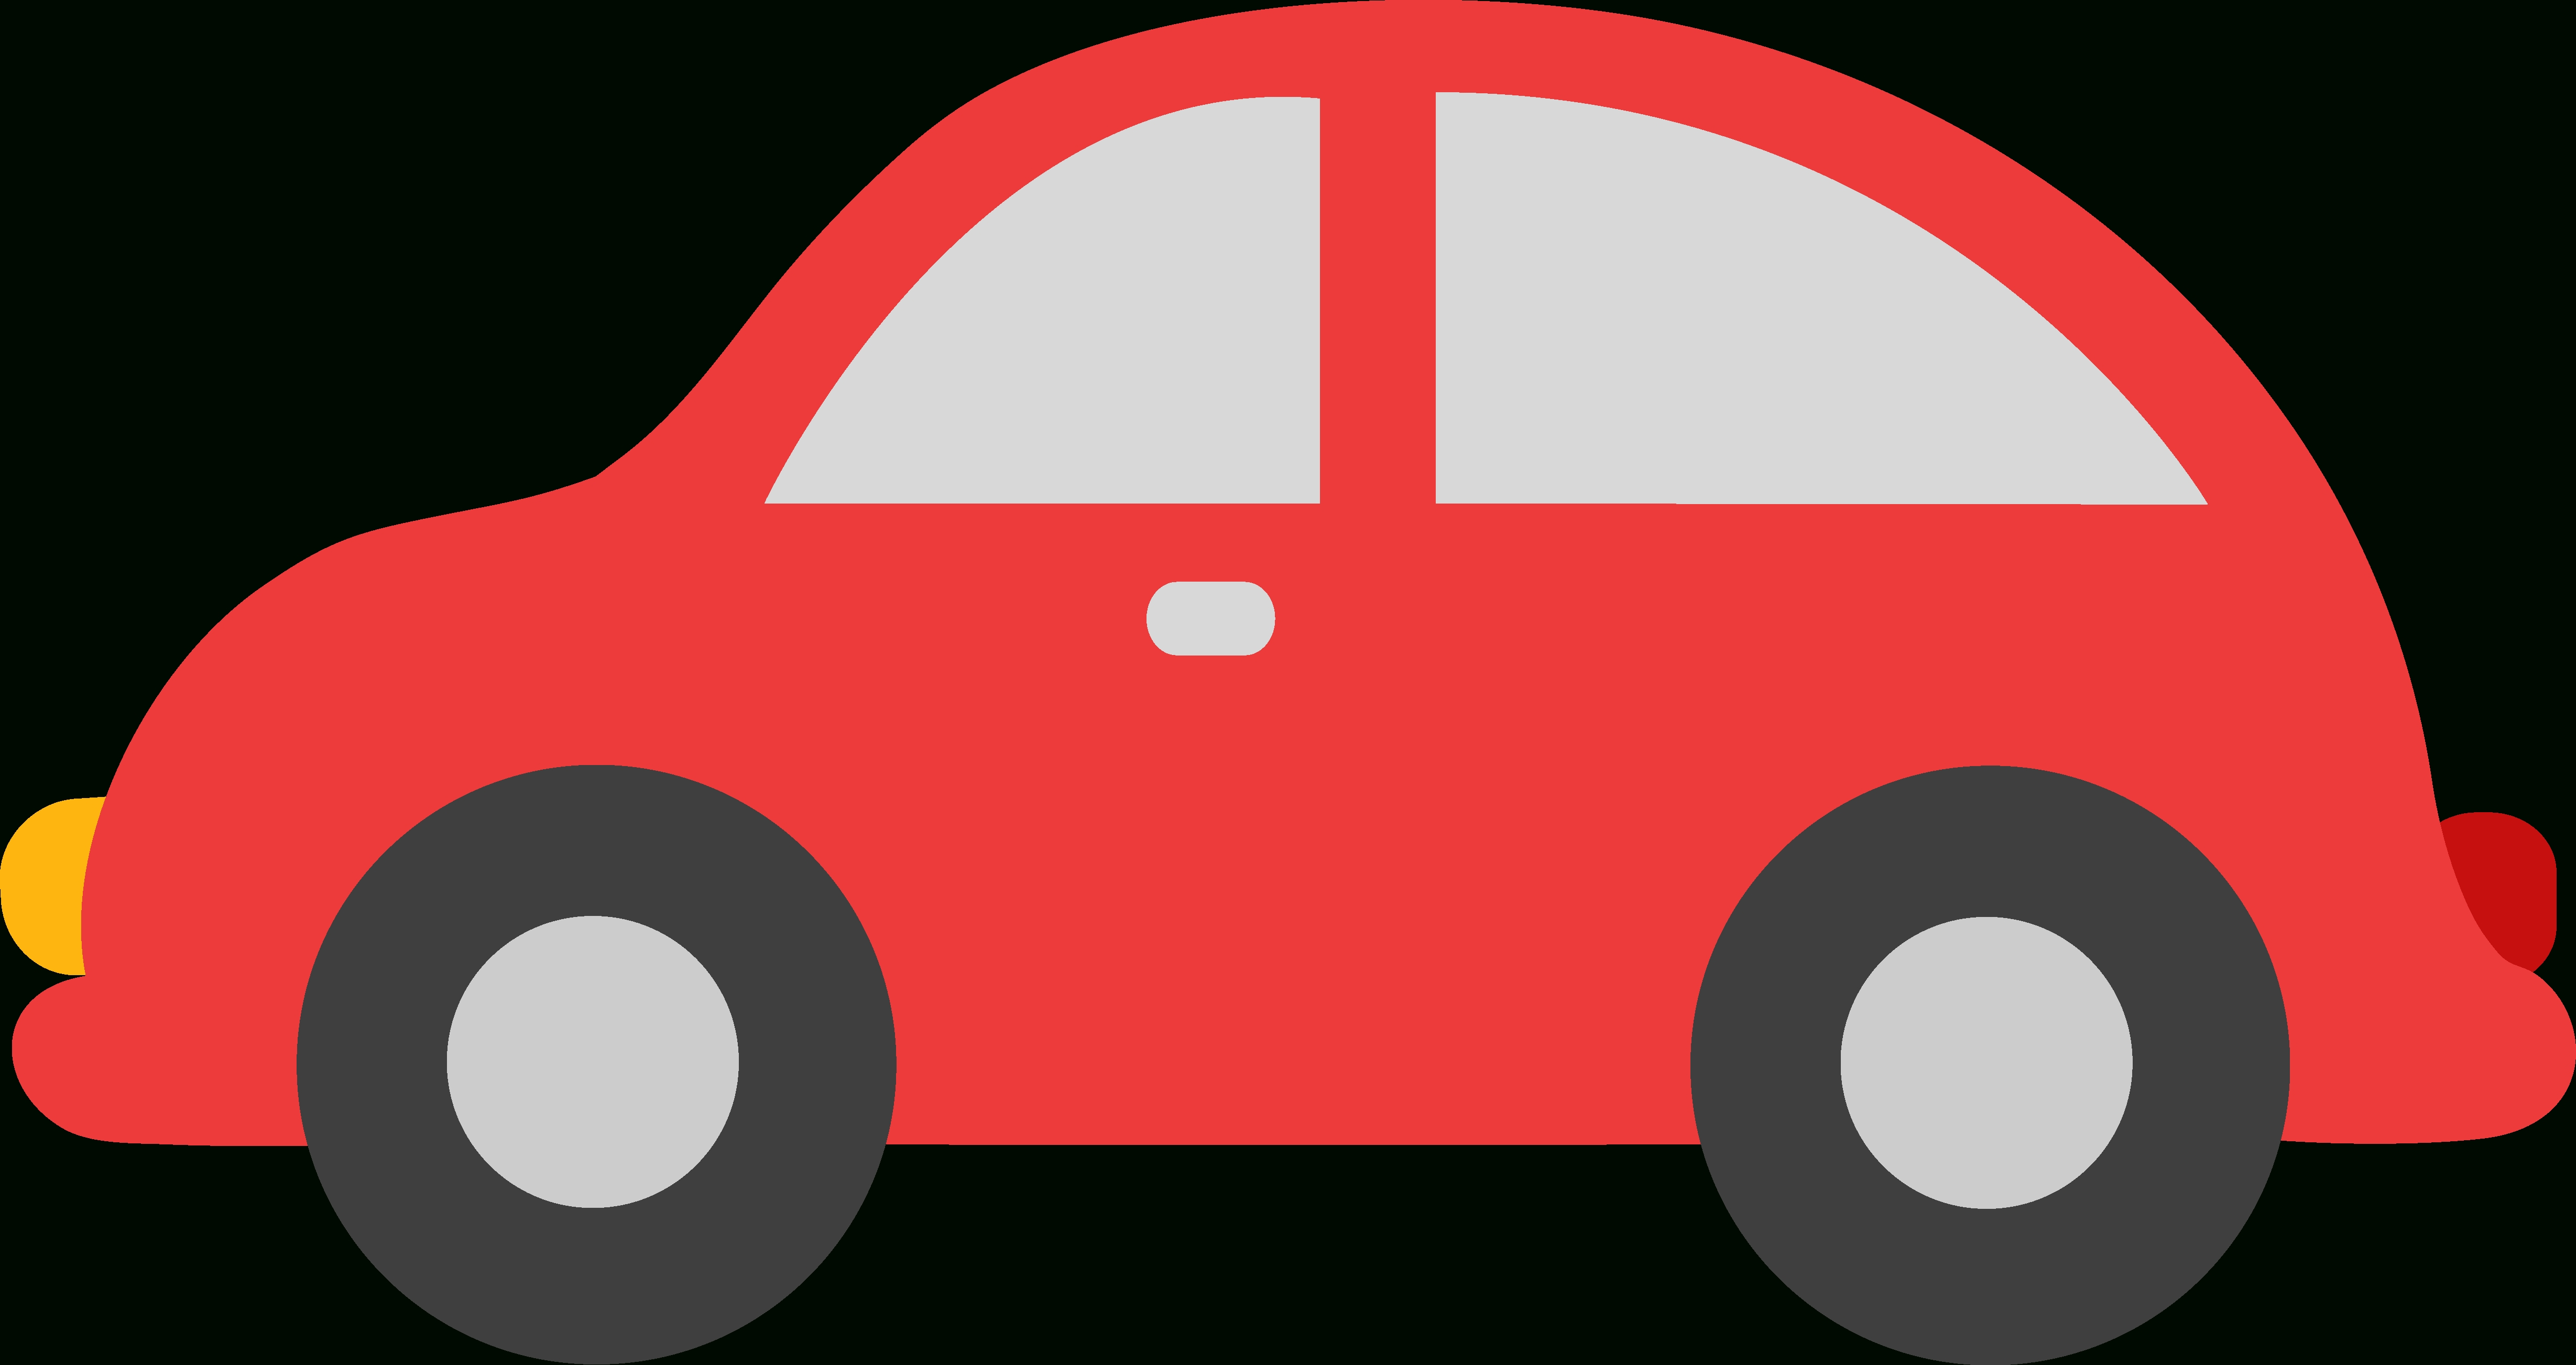 Red Toy Car Clipart - Free Clip Art inside Toy Car Clipart Png 13204 - Toy Car PNG Free